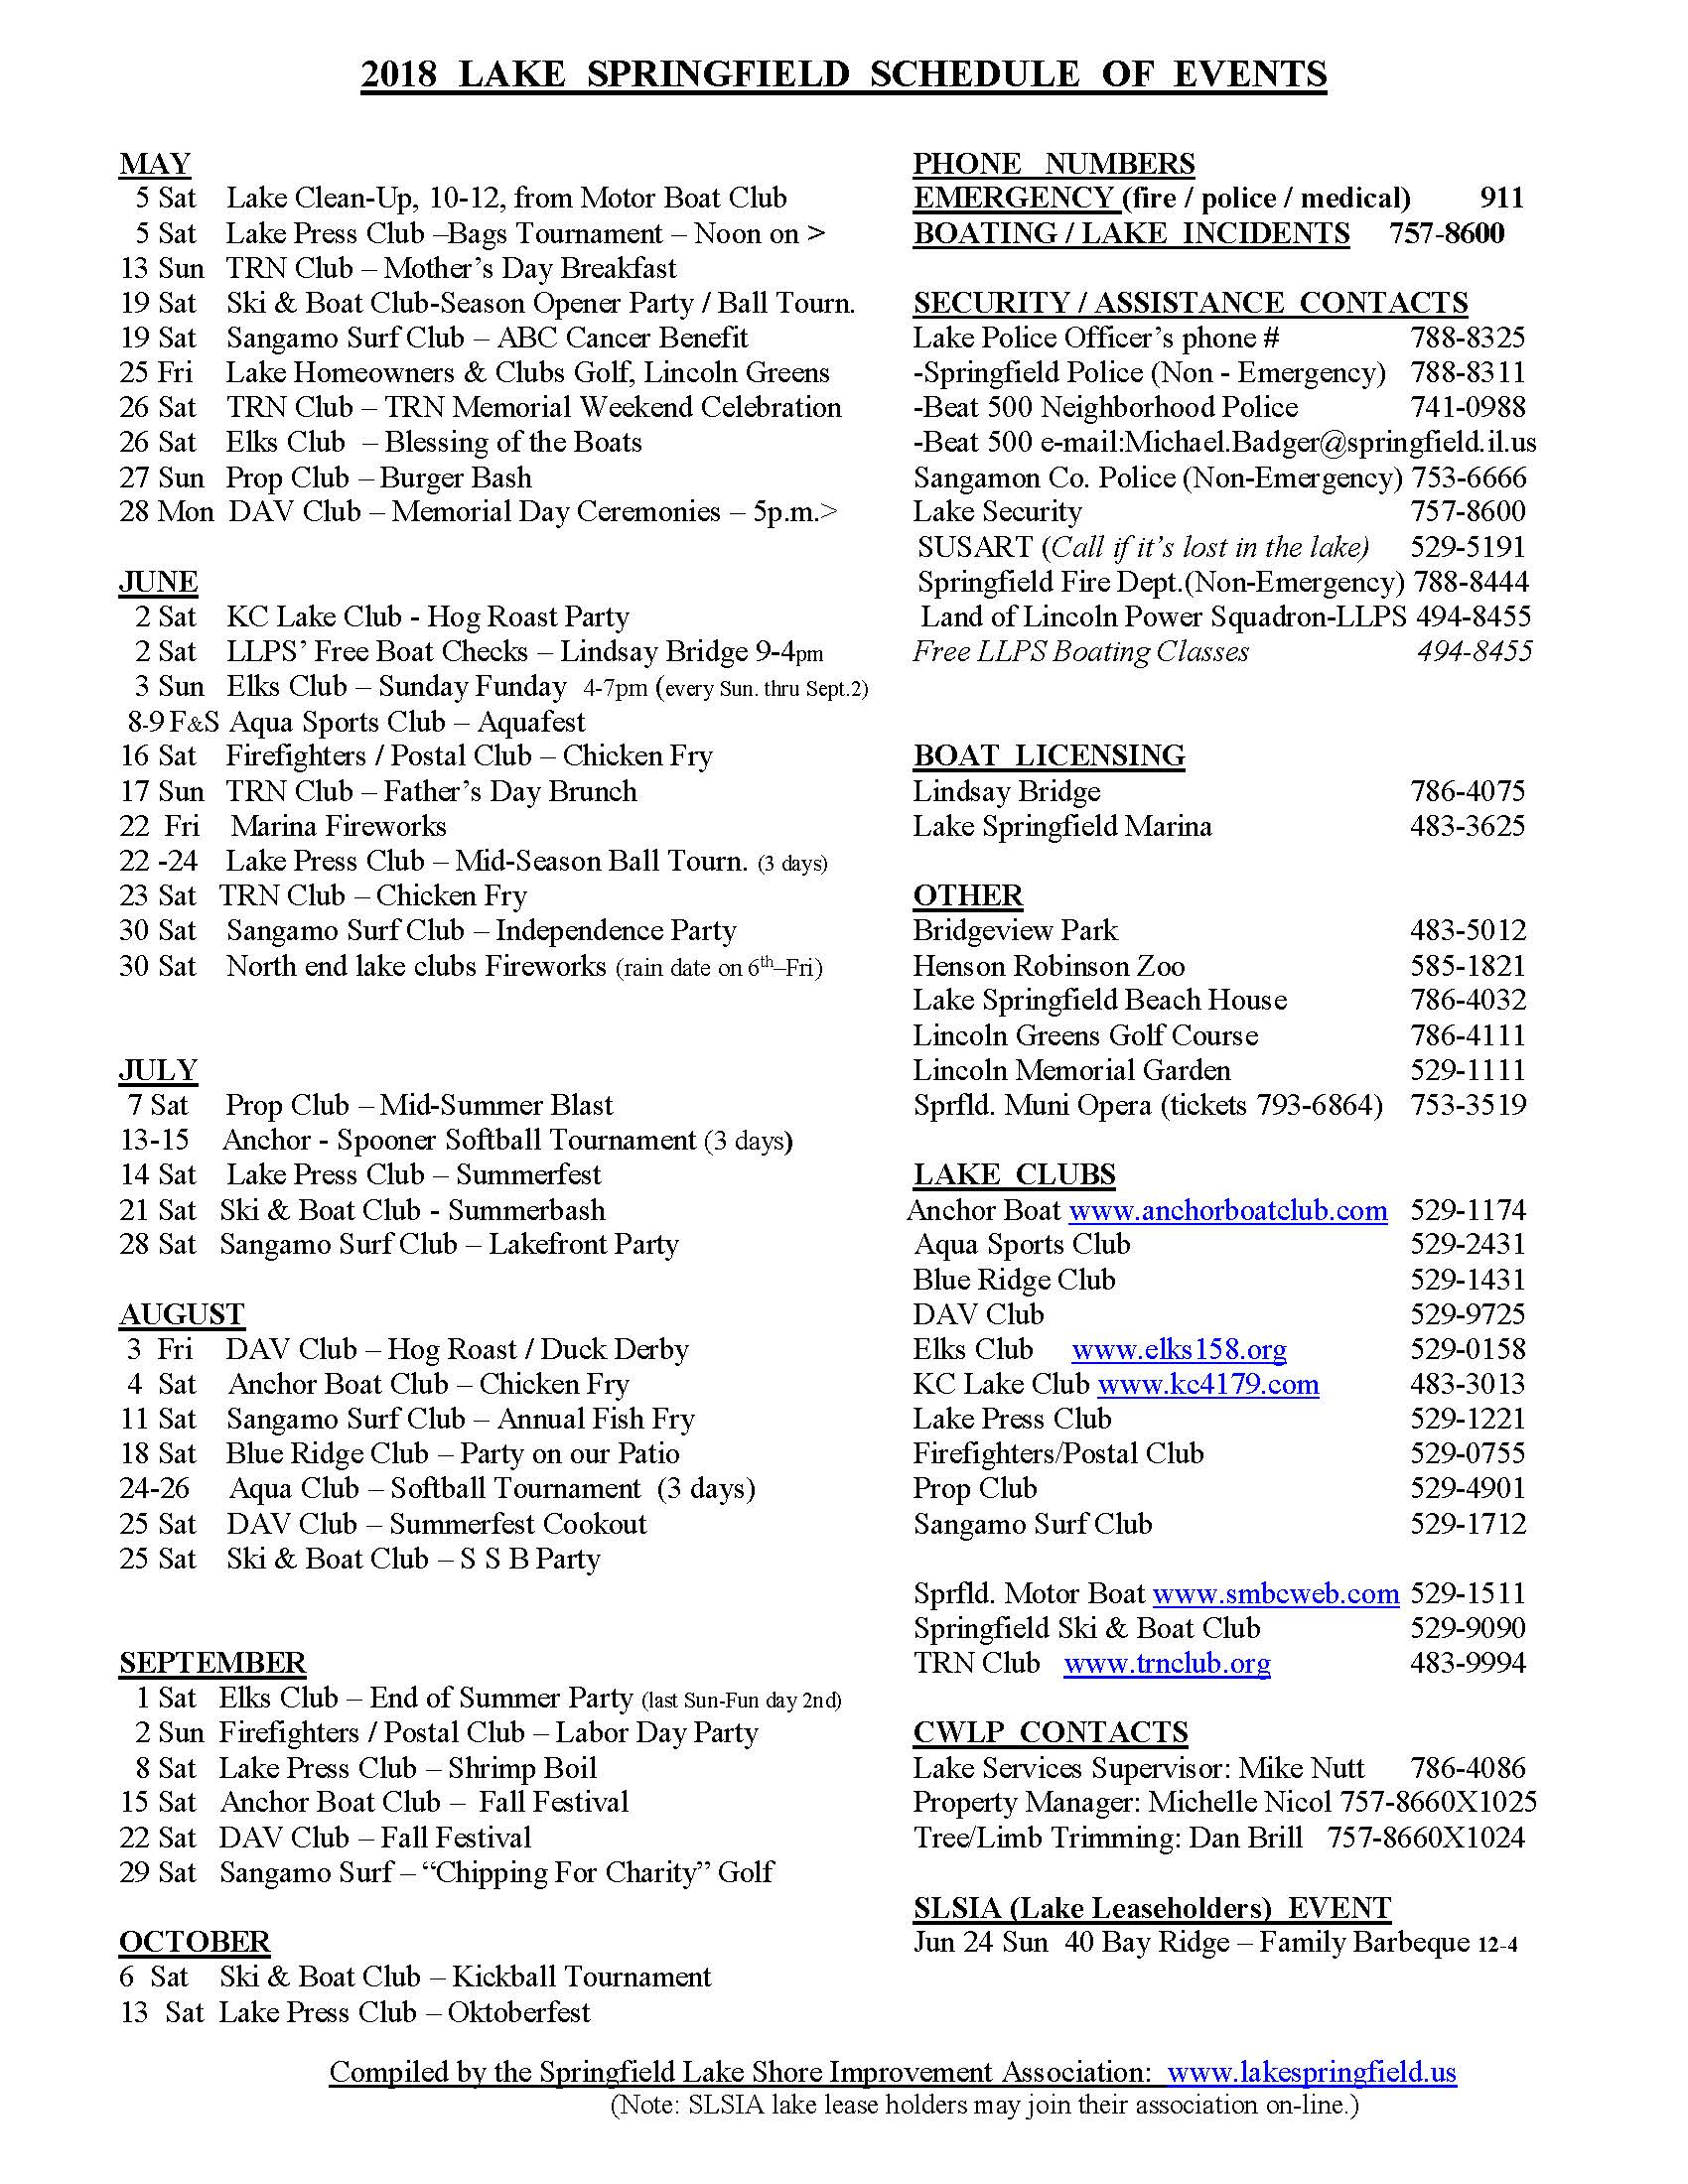 lake springfield schedule of events